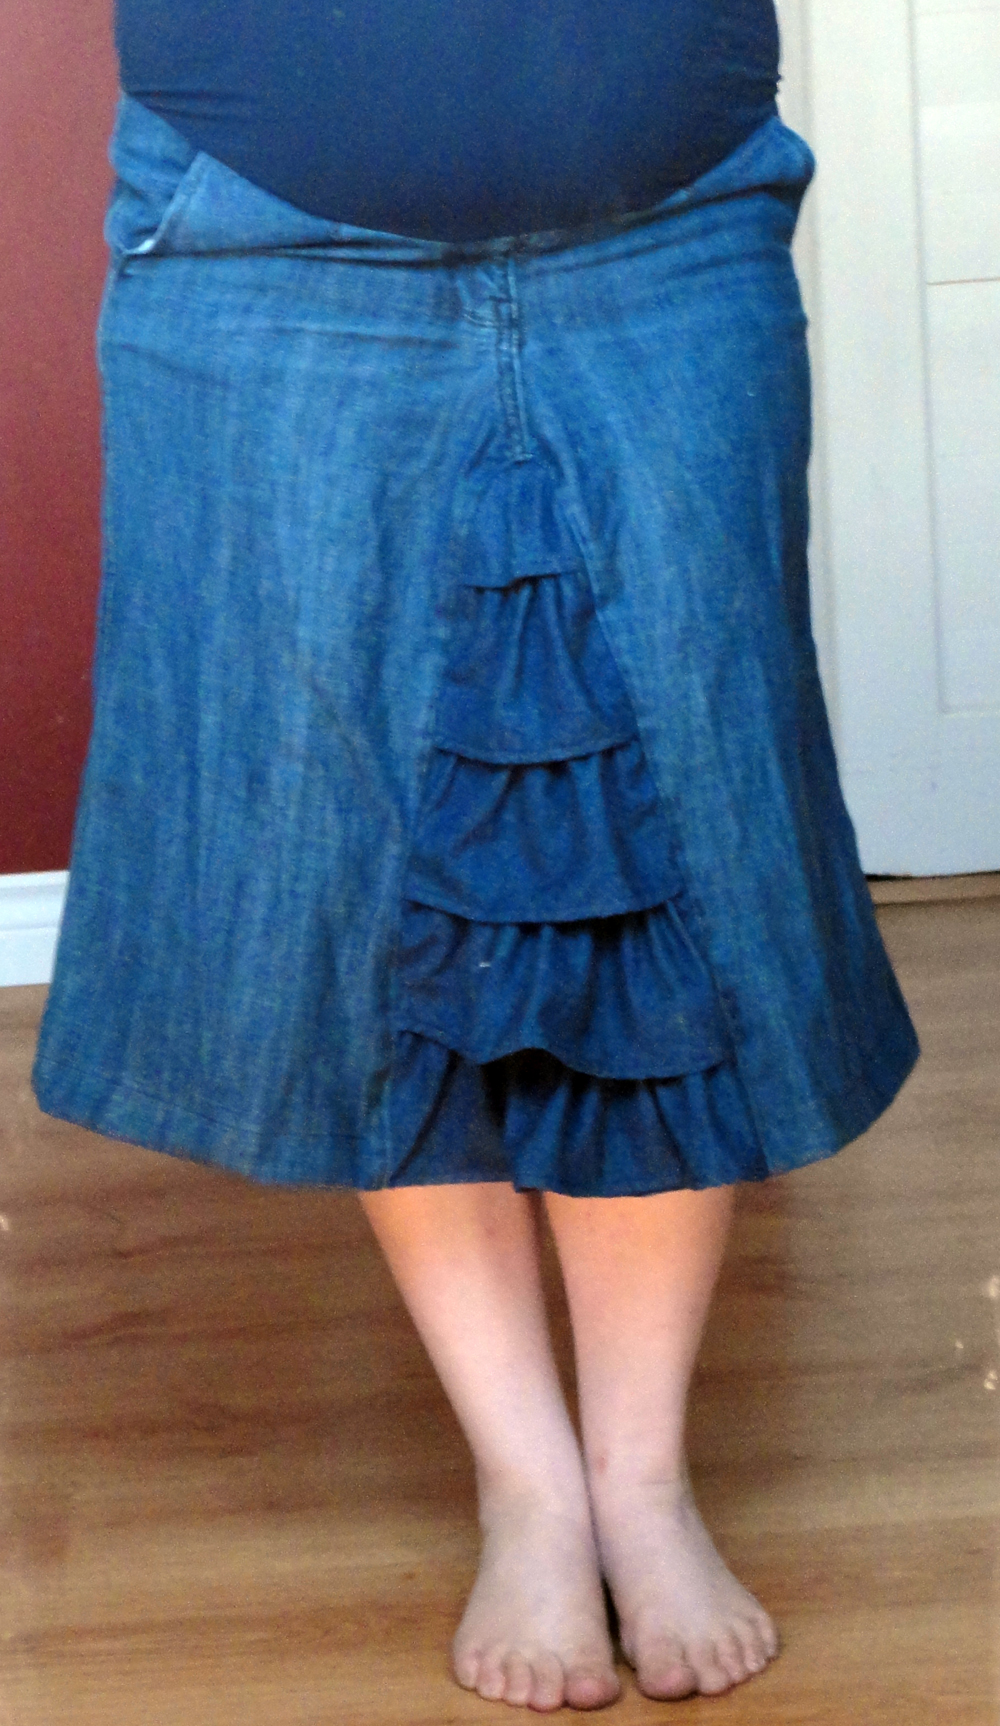 39dde3f68f998 This ruffly little denim skirt was designed out of the need for some more  maternity bottoms (all I had so far were two pairs of maternity pants).